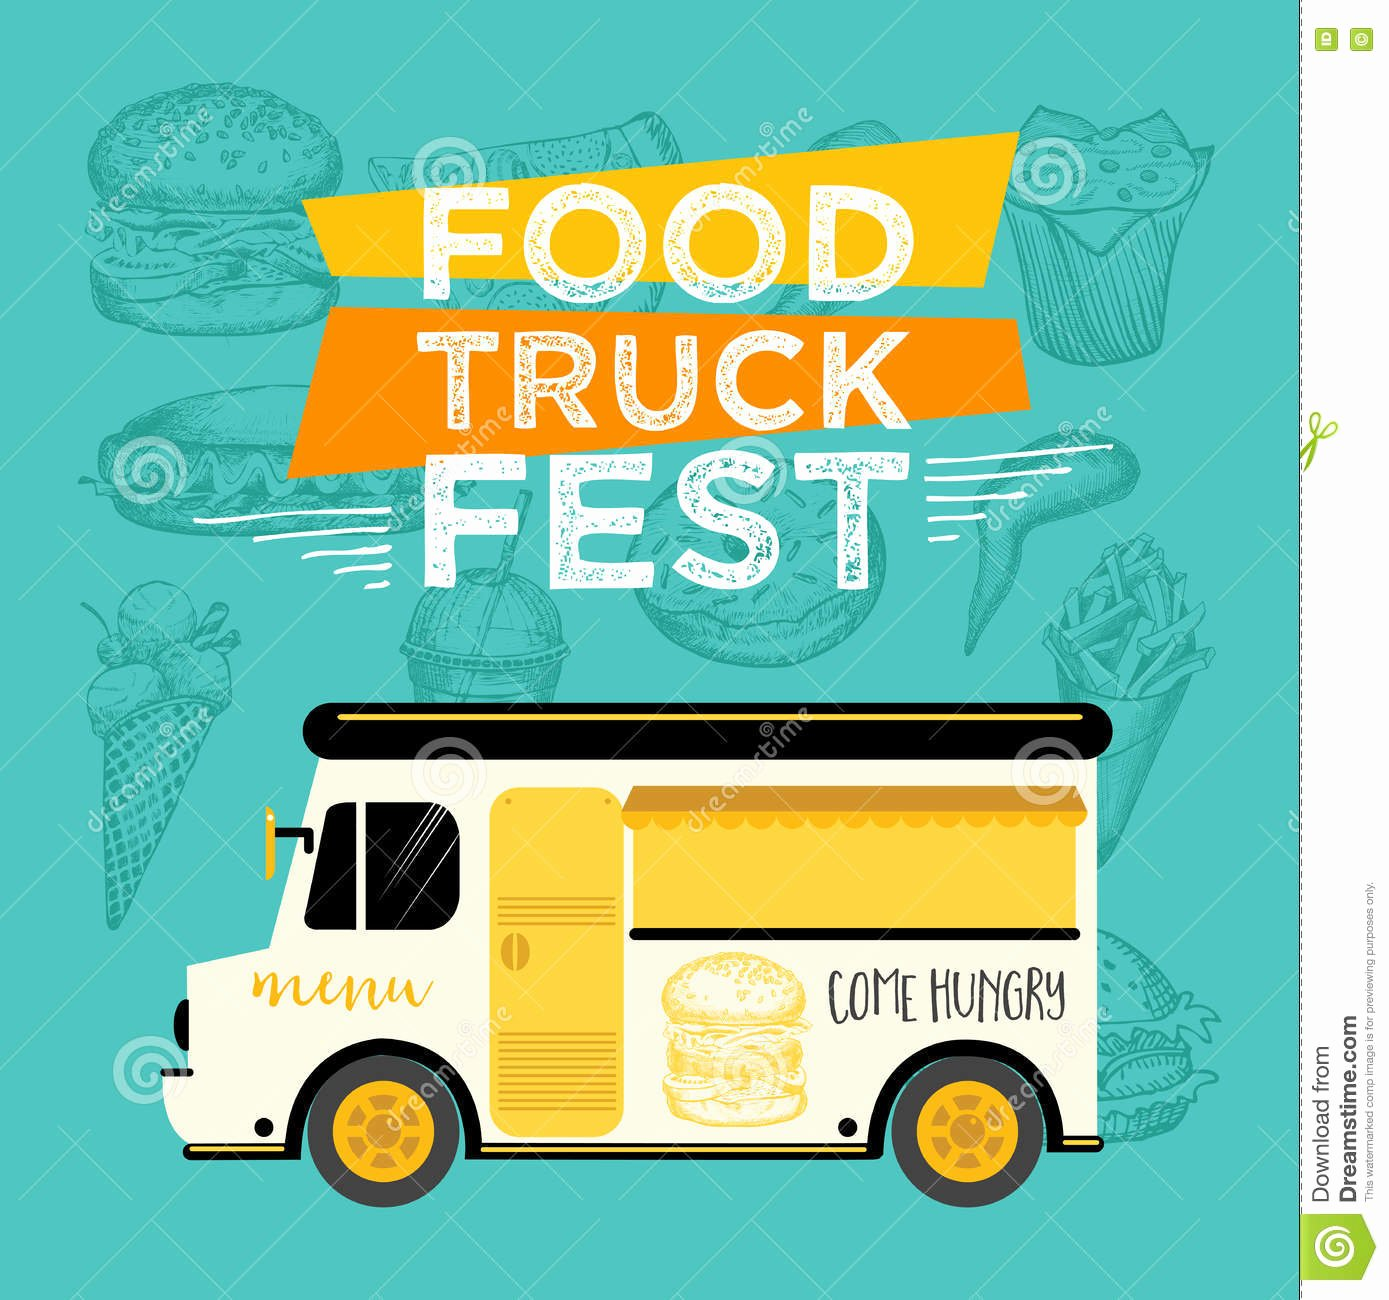 Food Truck Menu Template Elegant Food Truck Party Invitation Food Menu Template Design